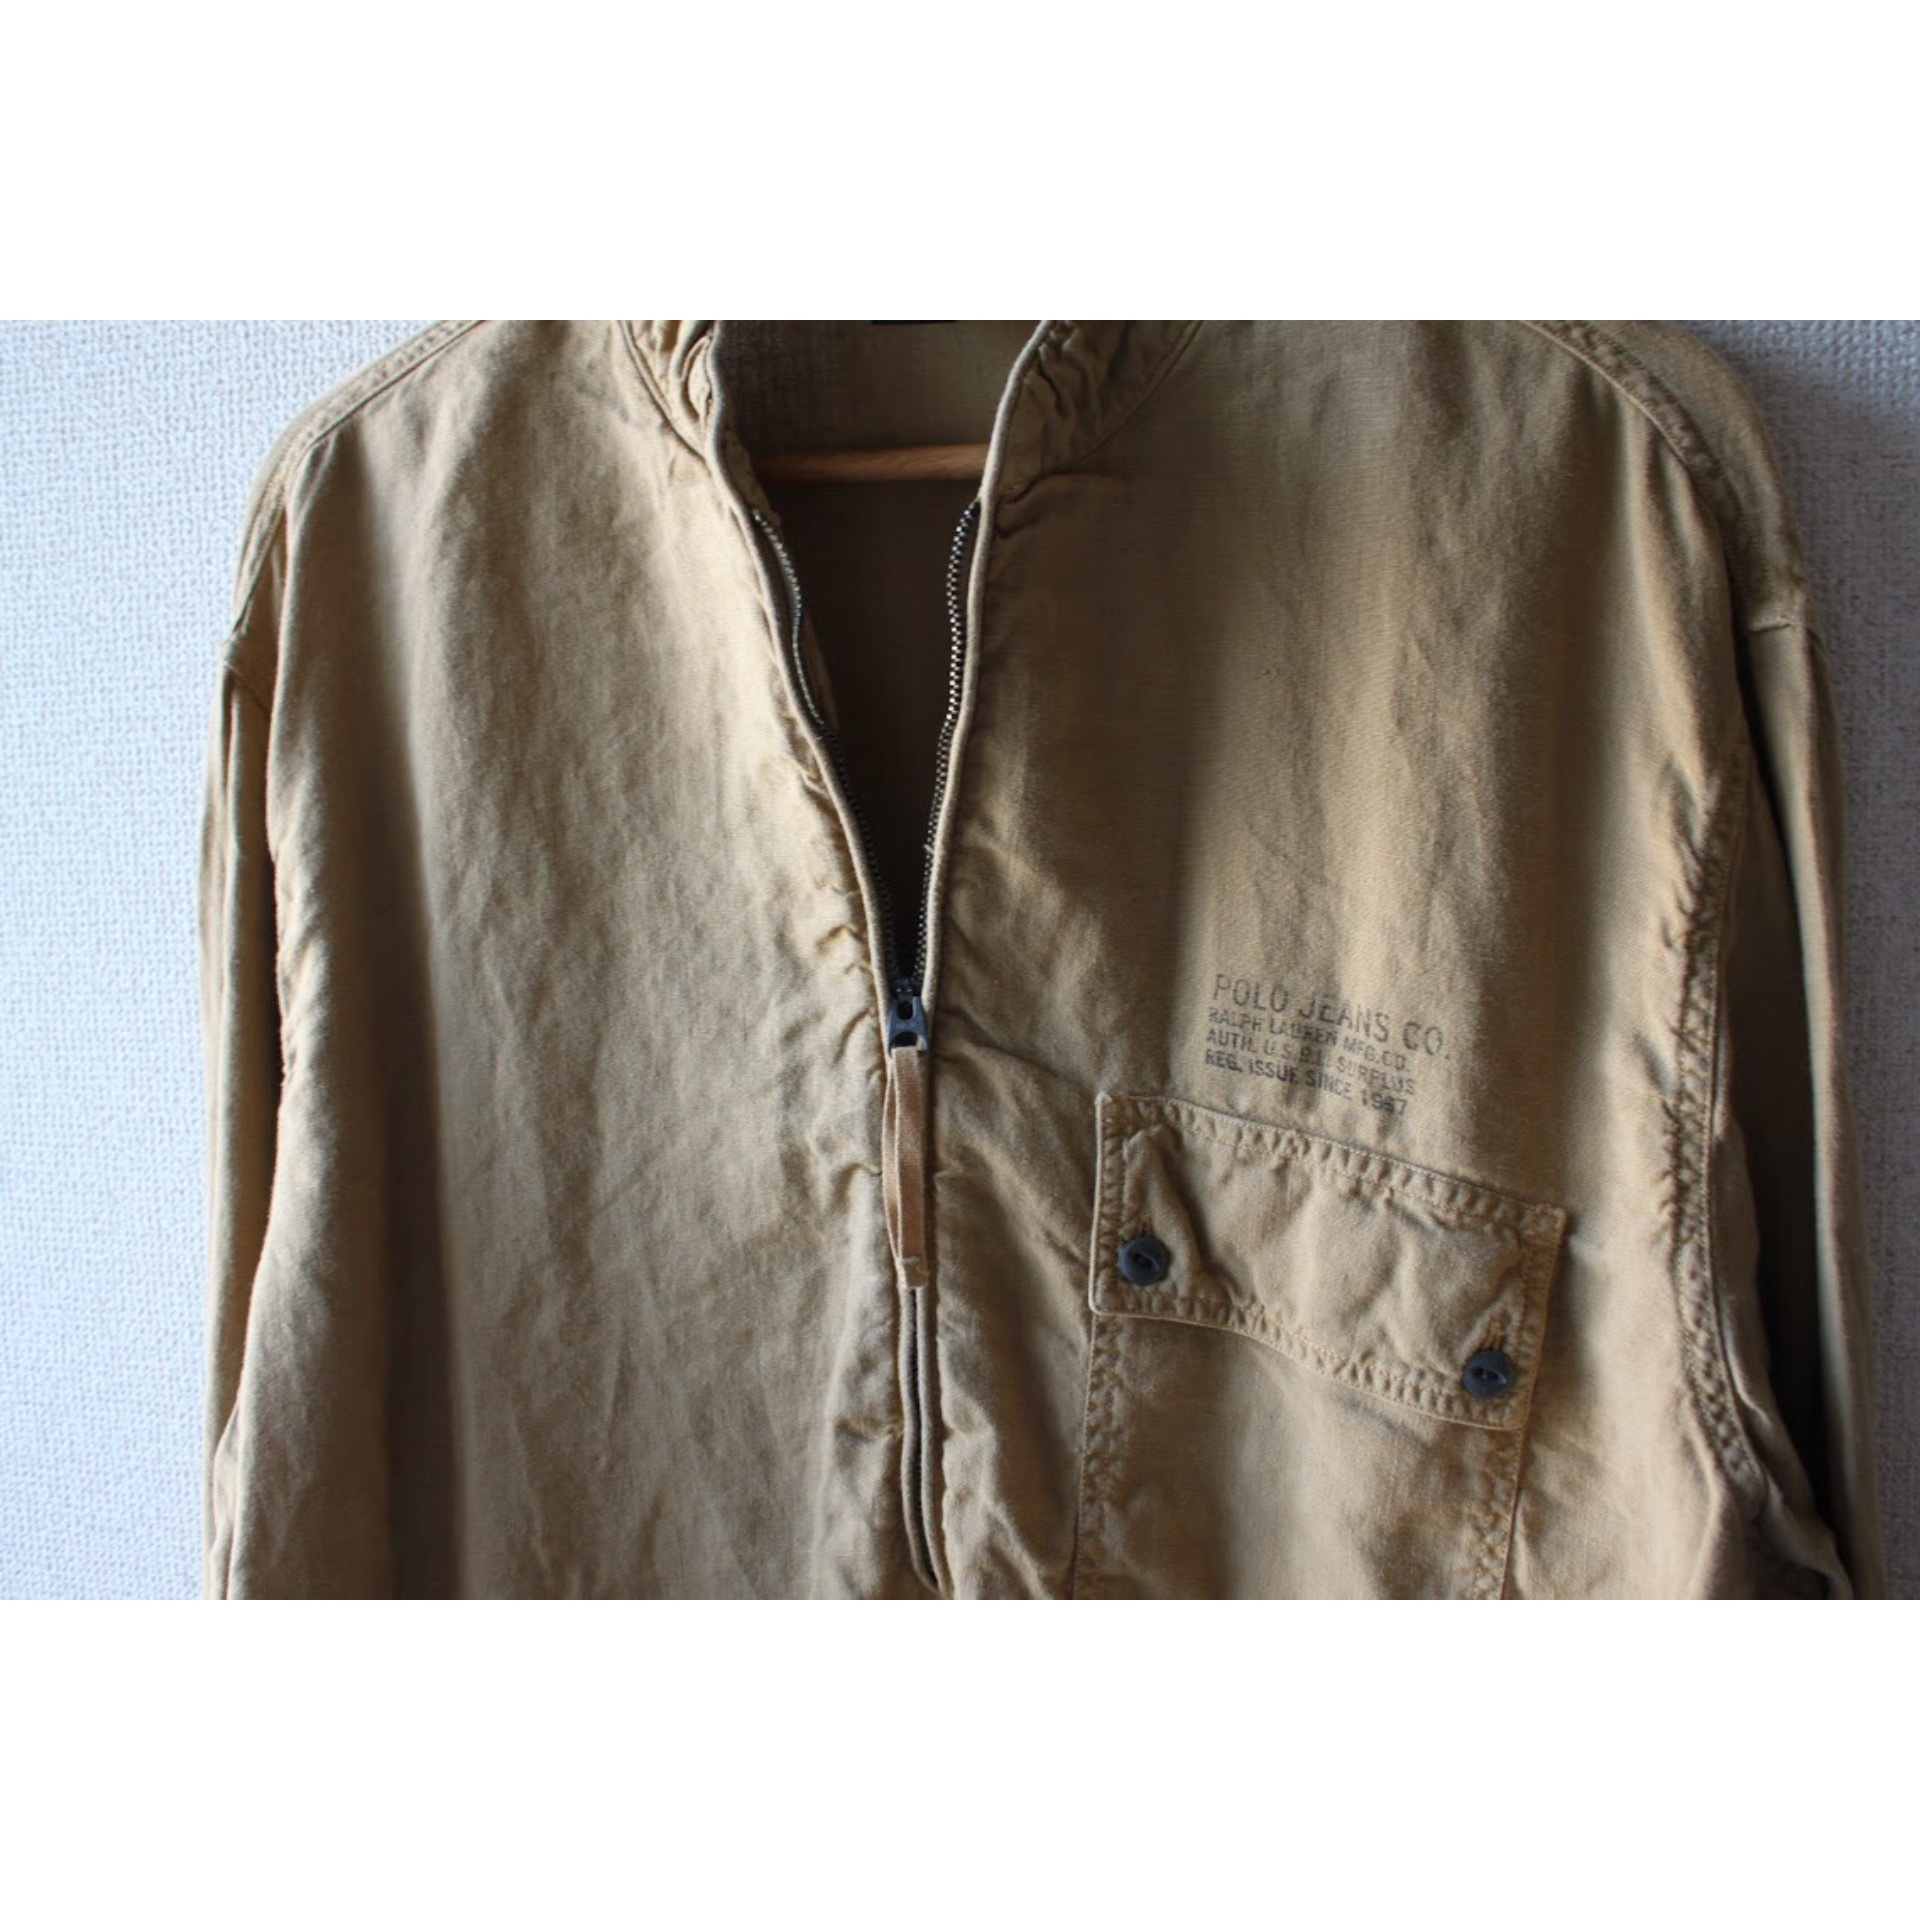 Vintage half zip shirt by Polo jeans co.